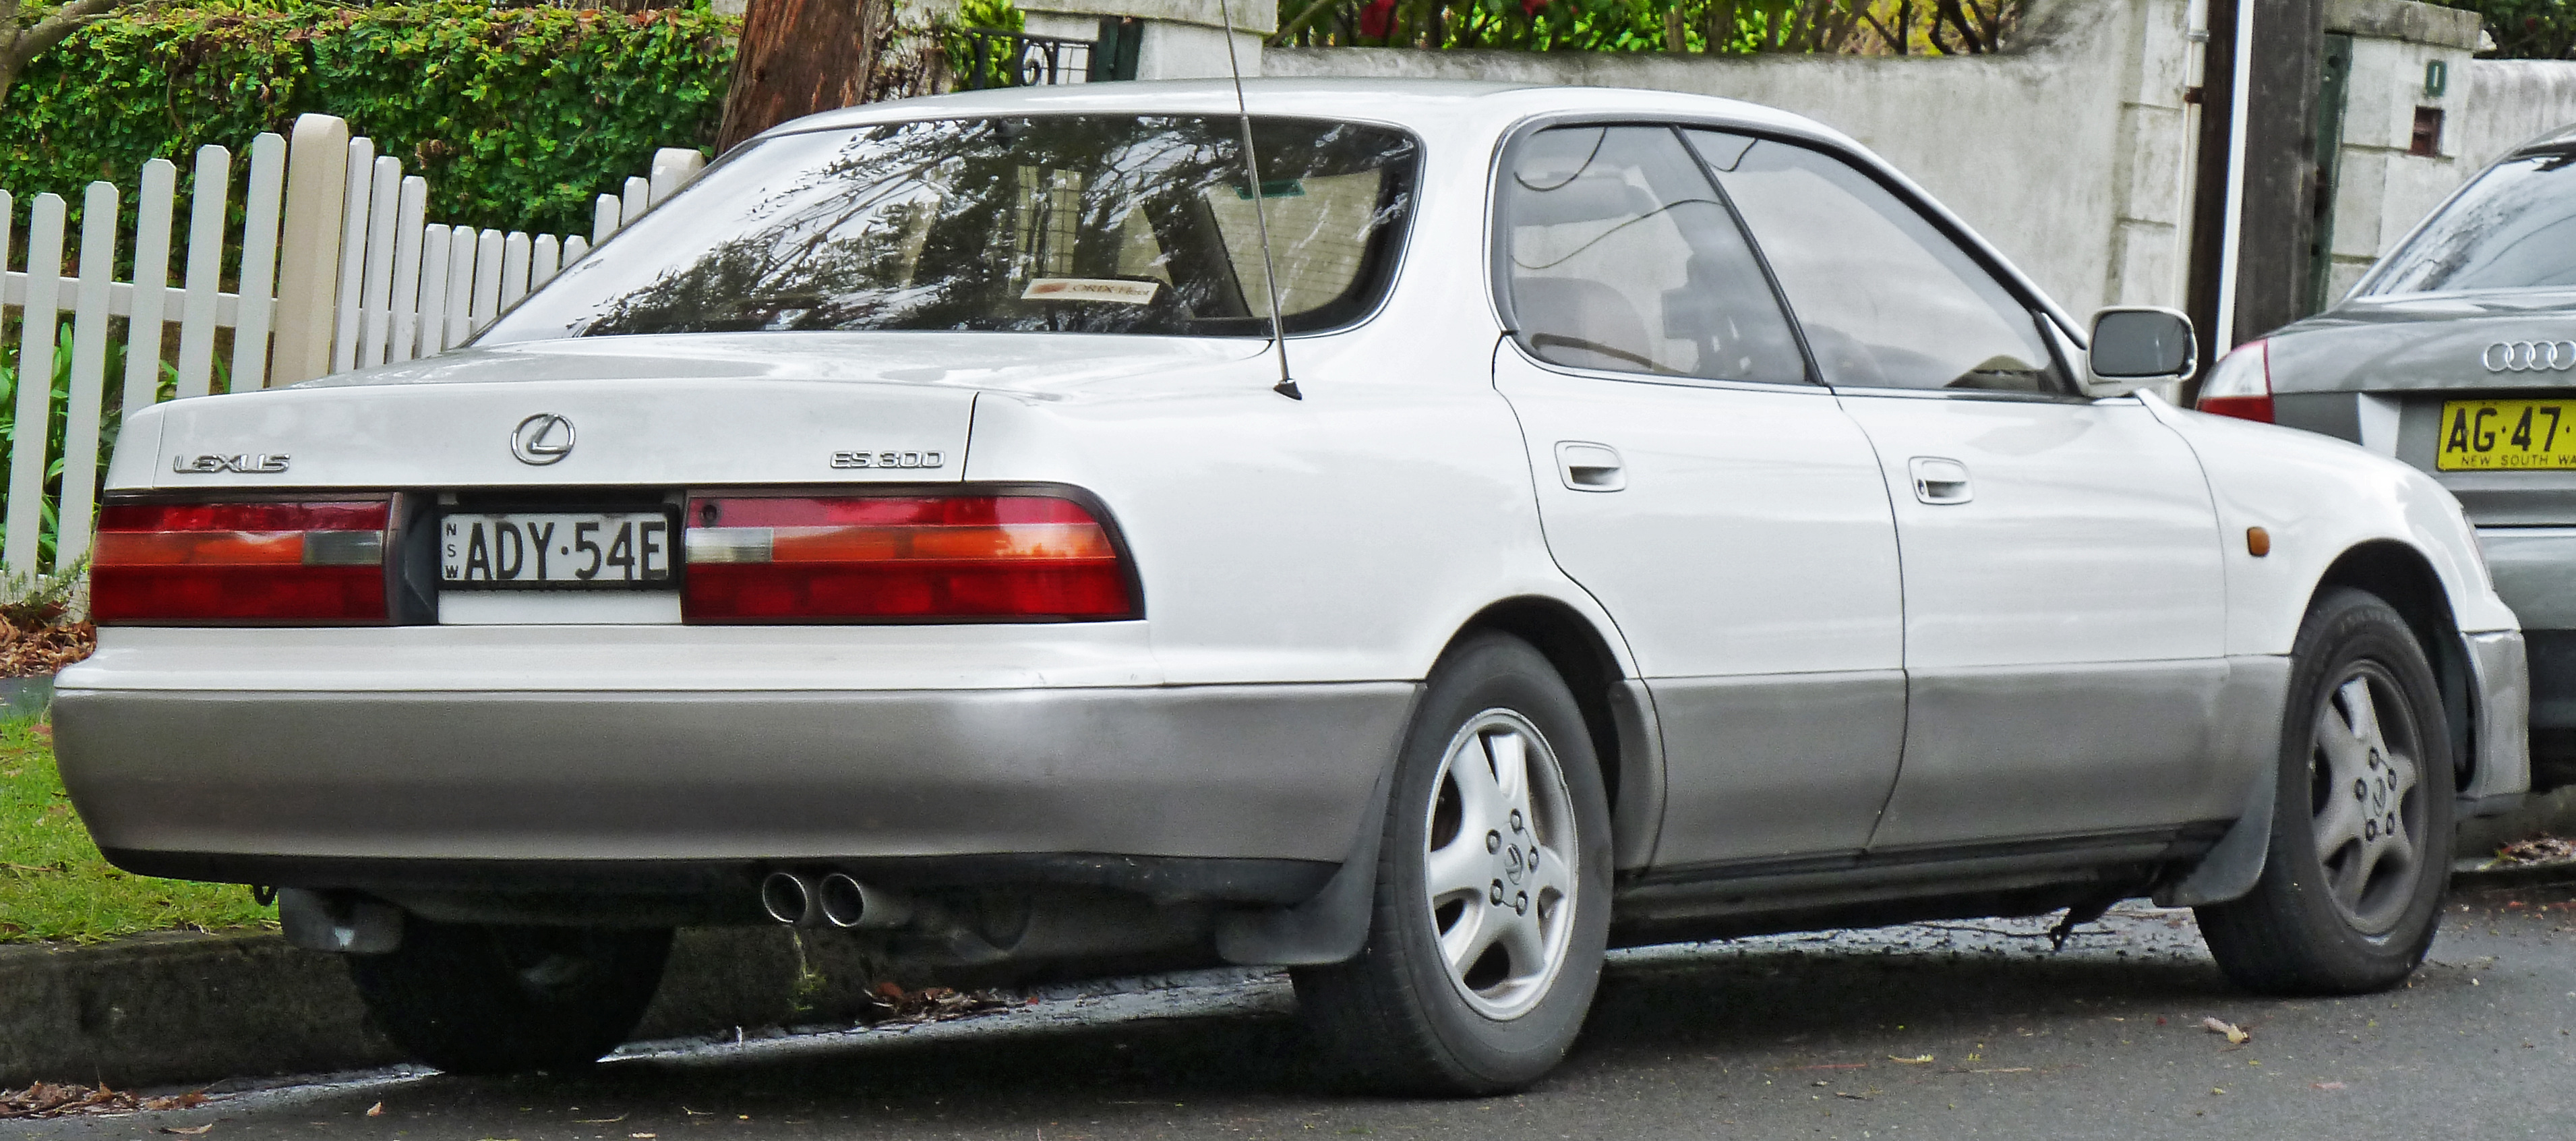 Take A Look About 1996 Lexus with Extraordi...<a href=